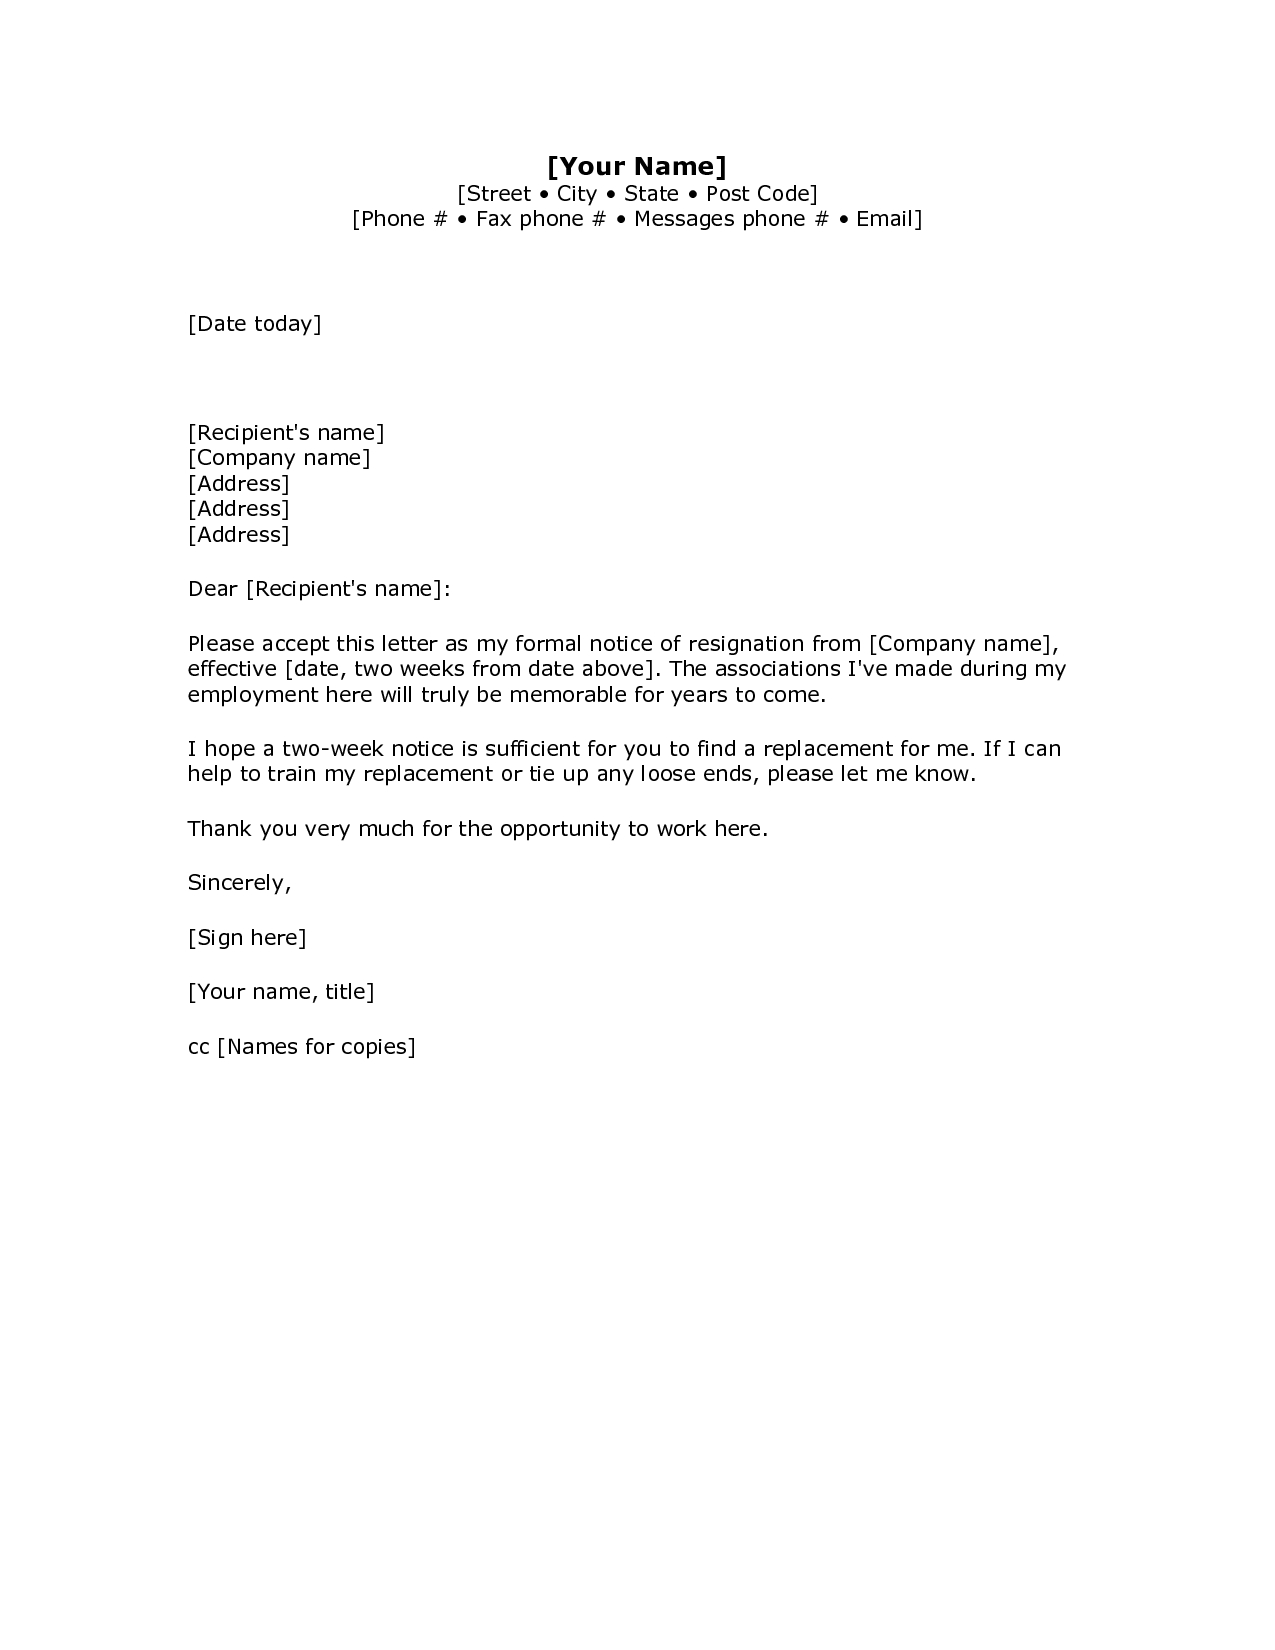 resignation letter template 2 weeks notice example-2 Weeks Notice Letter Resignation Letter Week Notice Words HDWriting A Letter Resignation Email Letter Sample 8-f